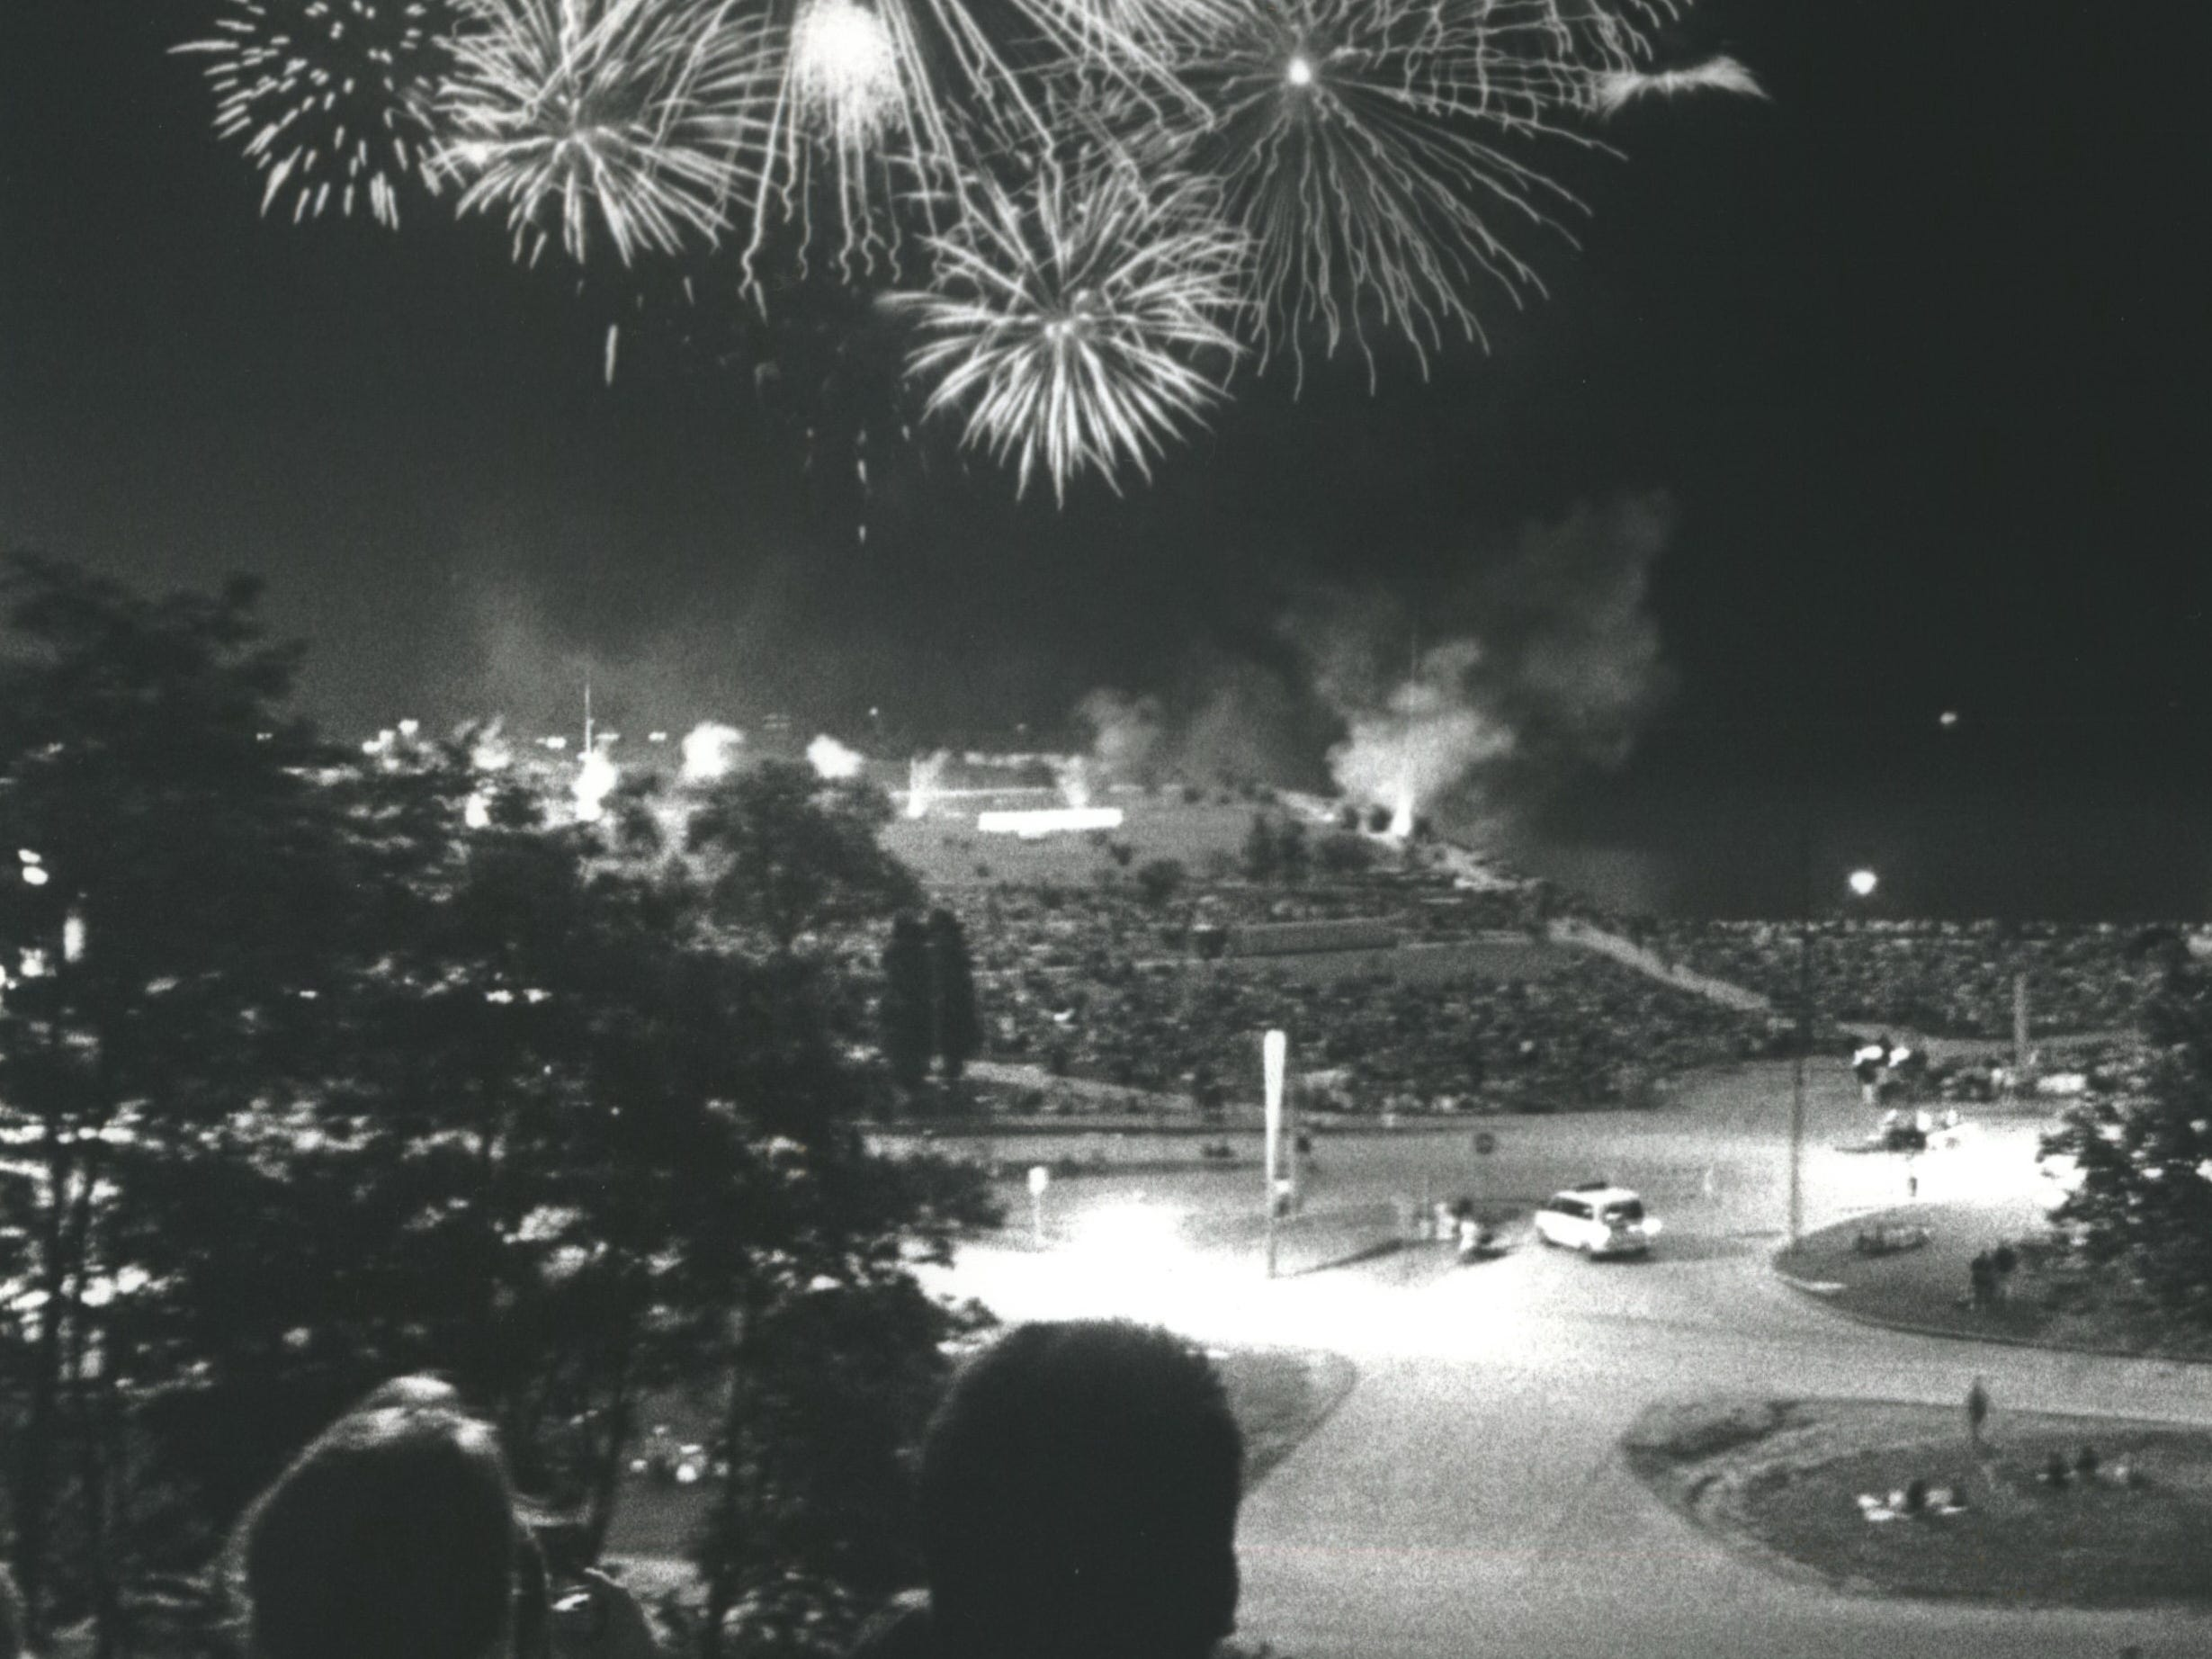 The Firstar Fireworks light up the sky at the lakefront on July 4, 1993. The fireworks had been postponed by rain from the day before. This photo was published in the July 5, 1993, Milwaukee Sentinel.